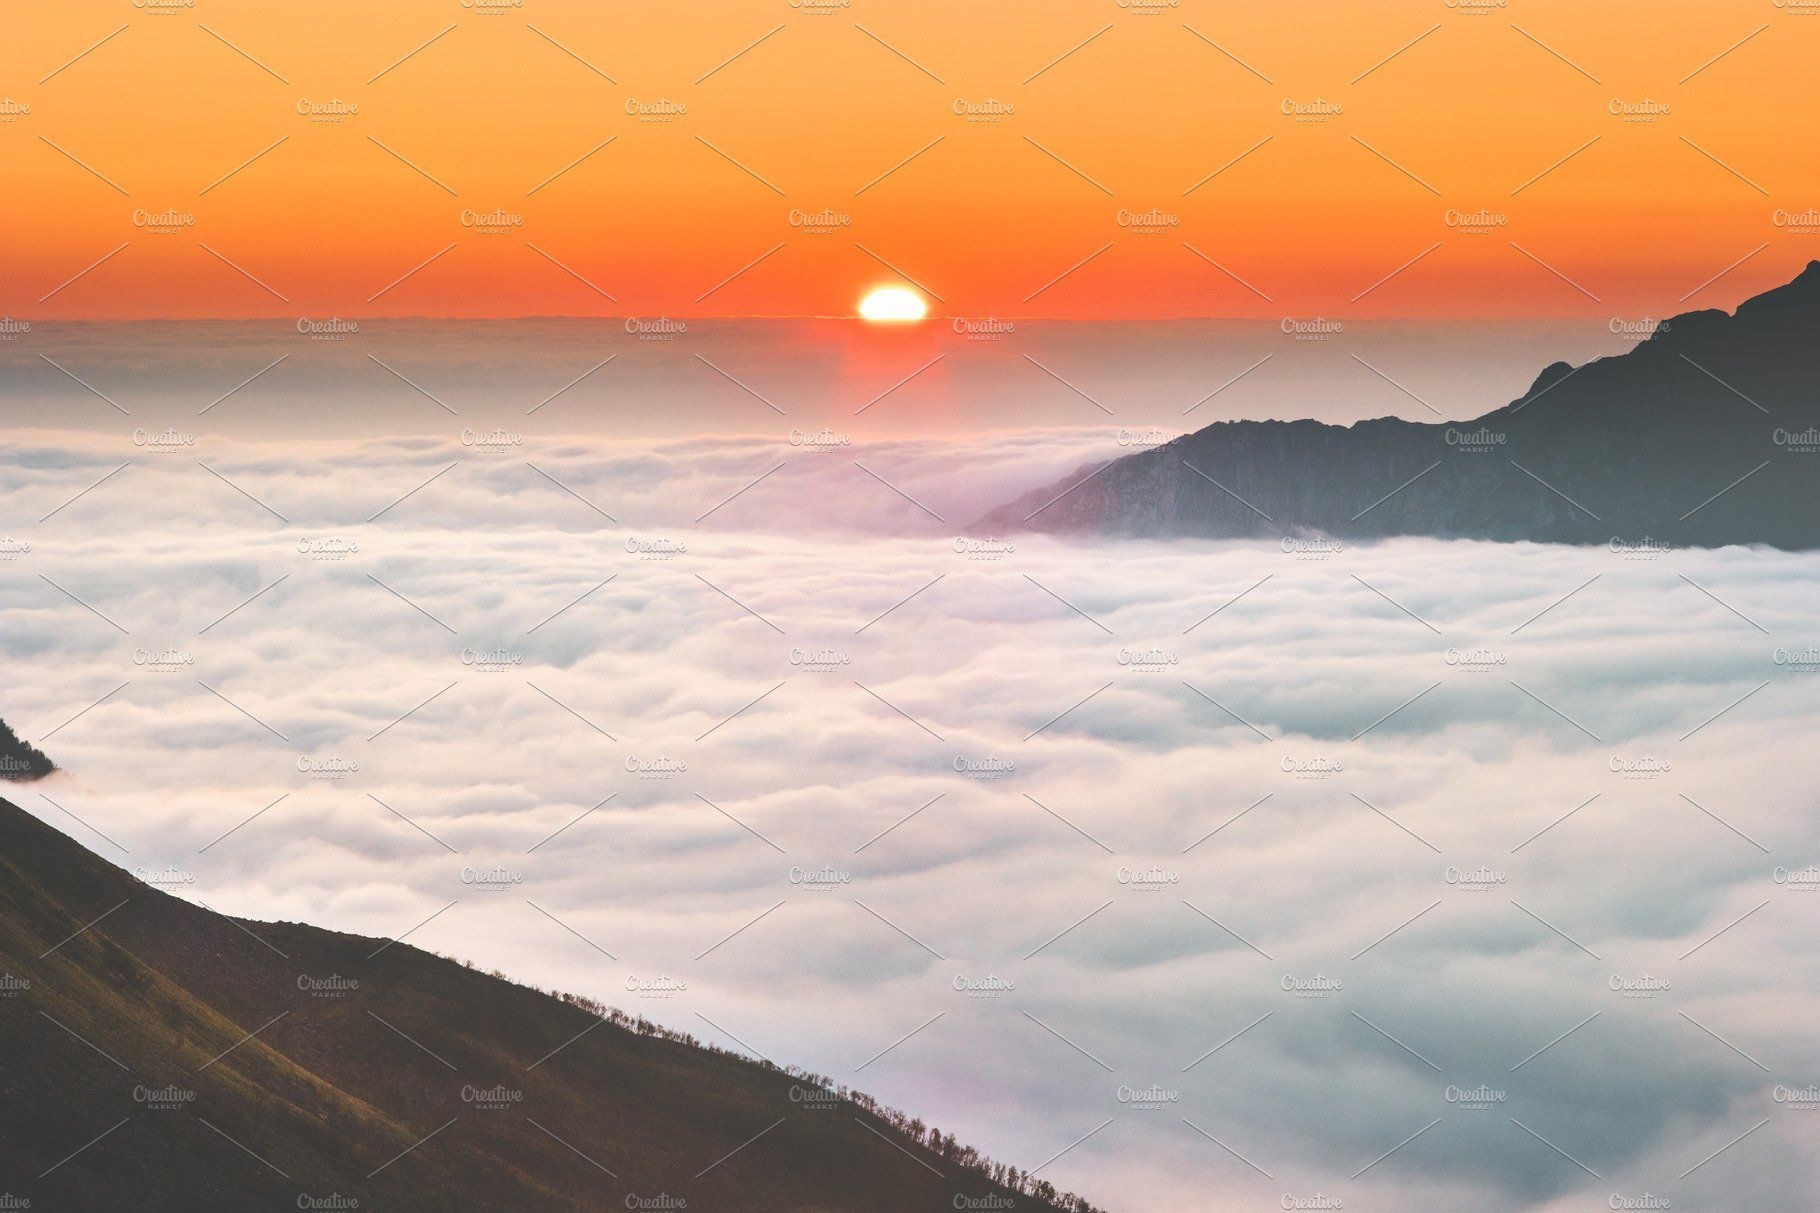 Sunrise Over Mountains Clouds Aerial Aerial Views Landscape Sunset Vacations Landscape Scenery